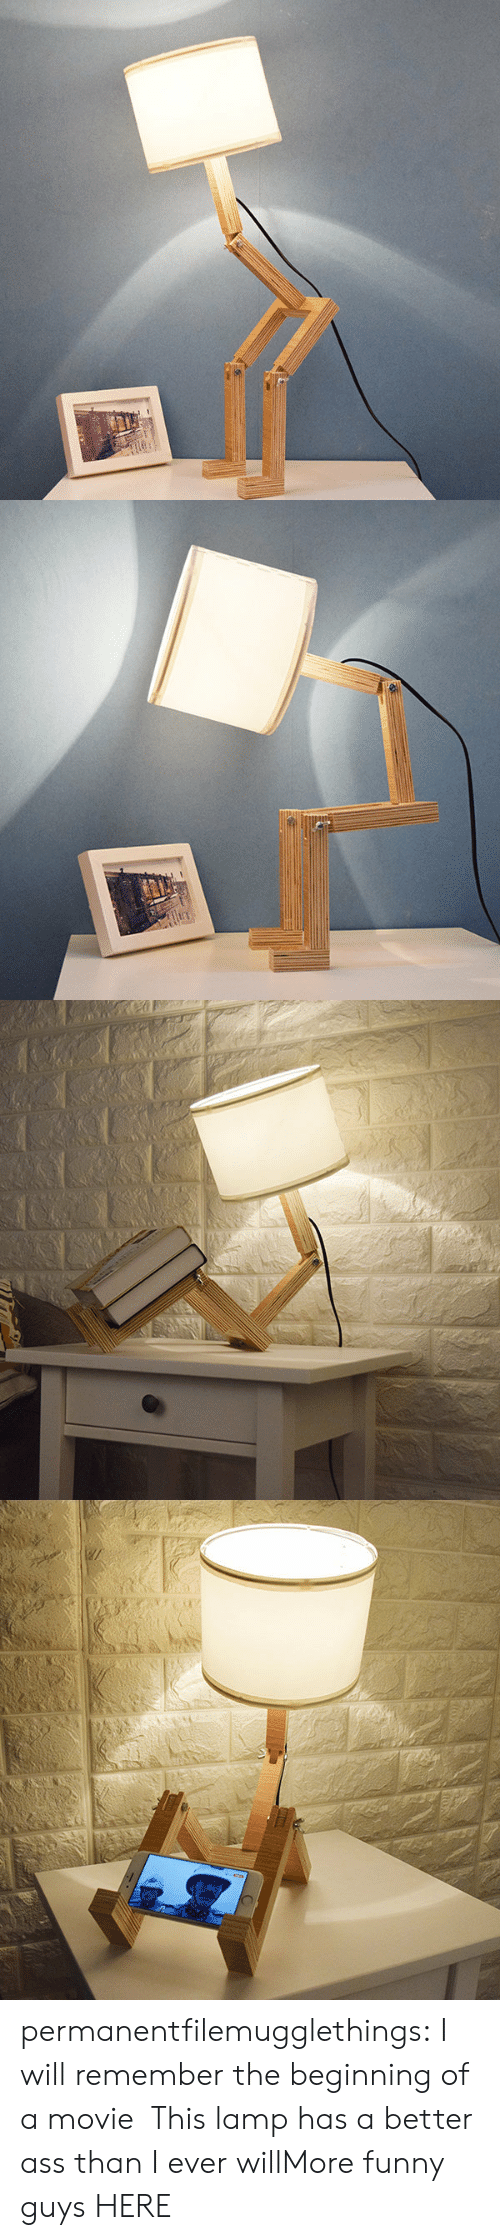 More Funny: 130C permanentfilemugglethings:  I will remember the beginning of a movie,This lamp has a better ass than I ever willMore funny guys HERE:)